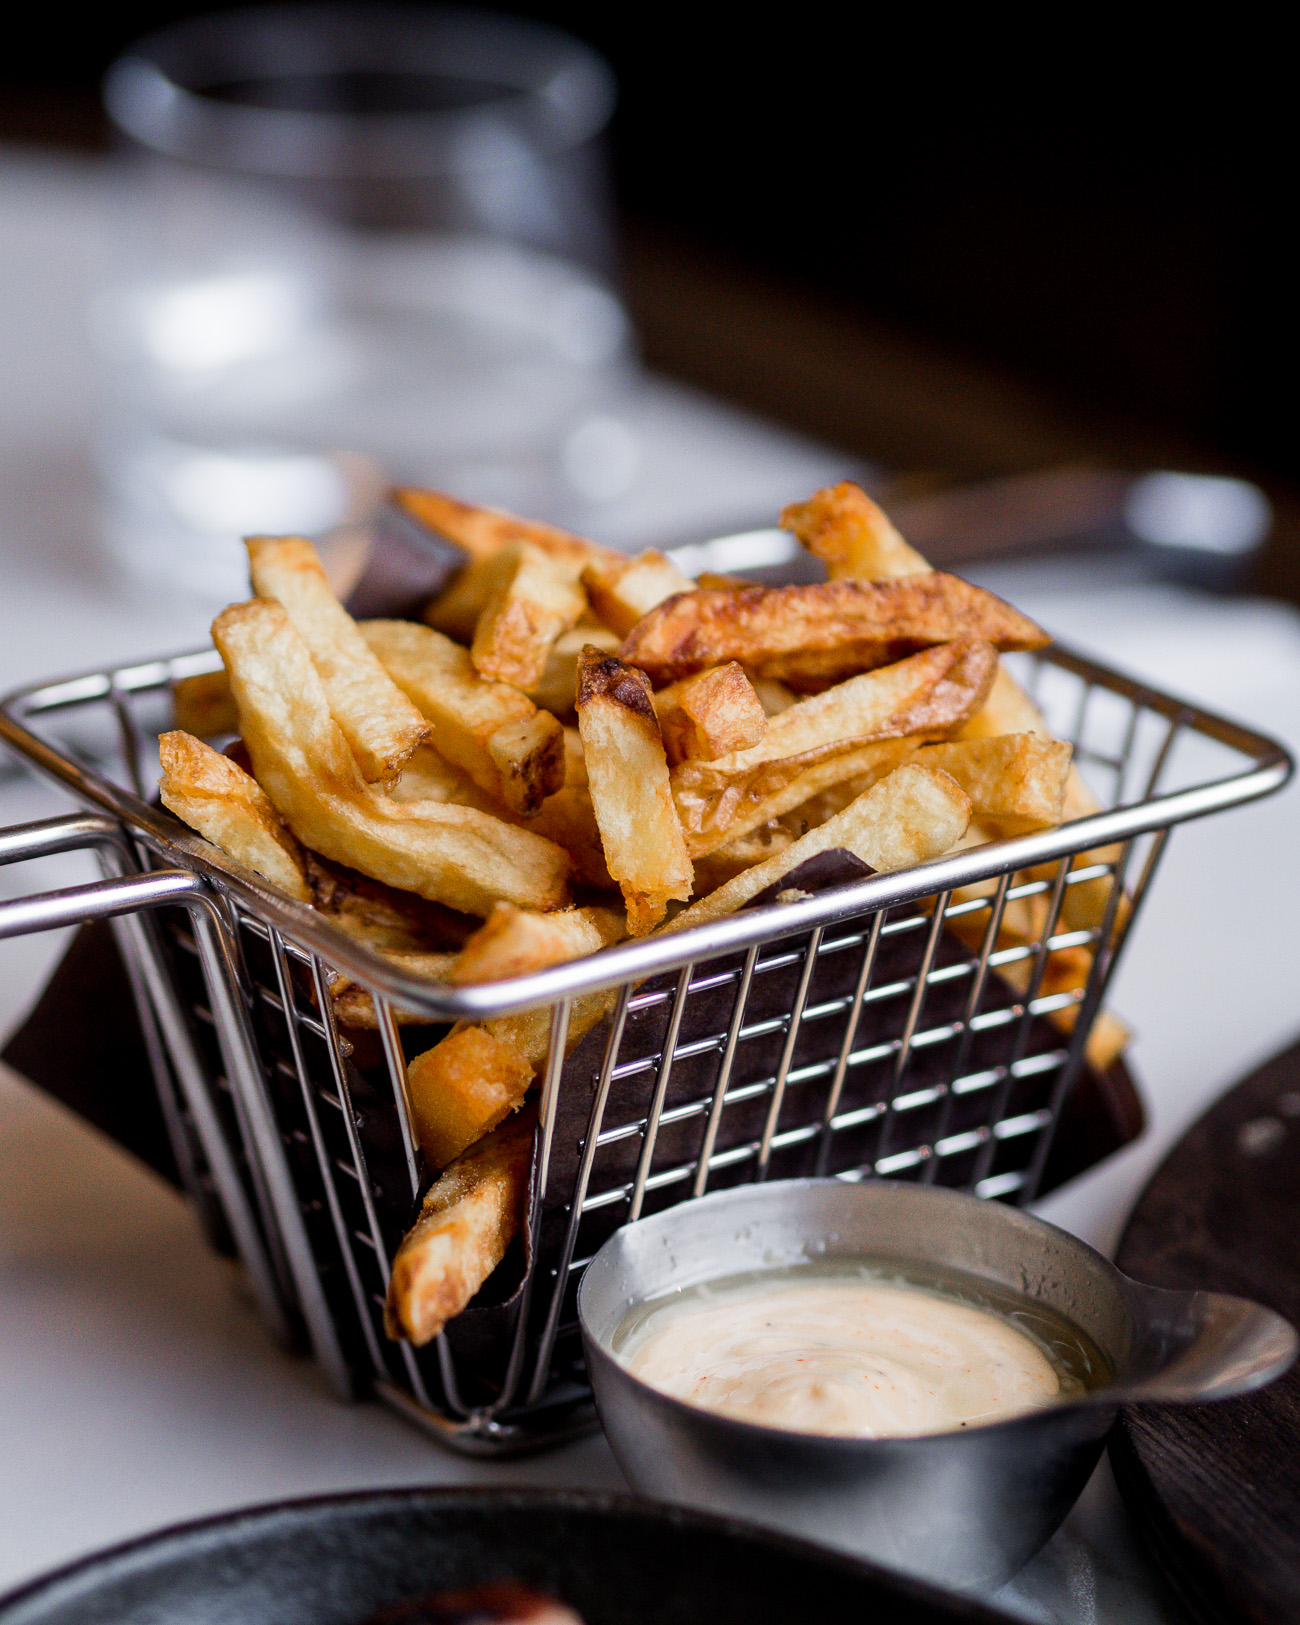 Duck Fat fries from the new Toronto restaurant on Dundas West